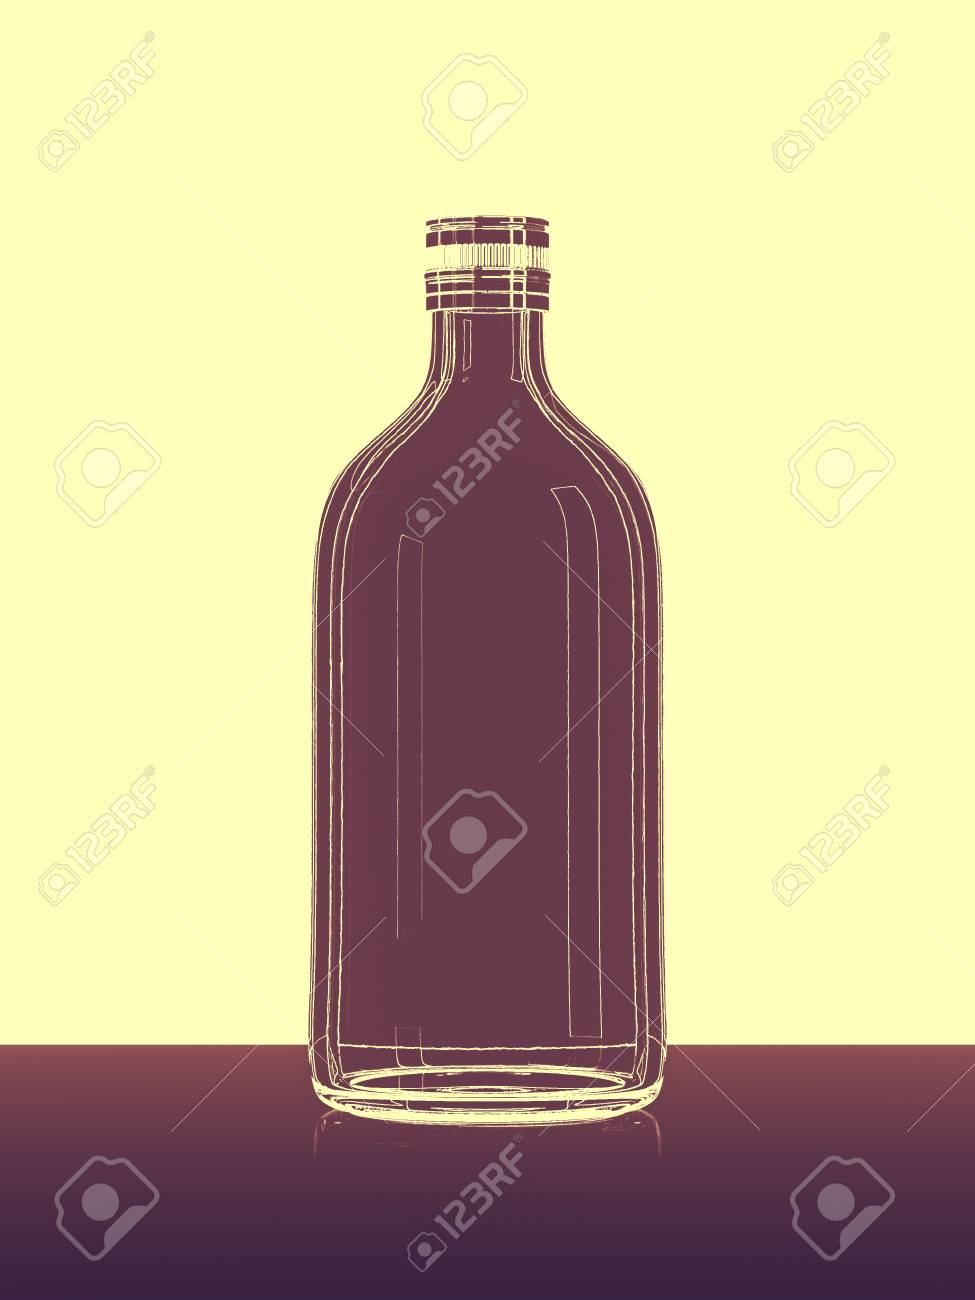 abstract bottle lines - 32423653